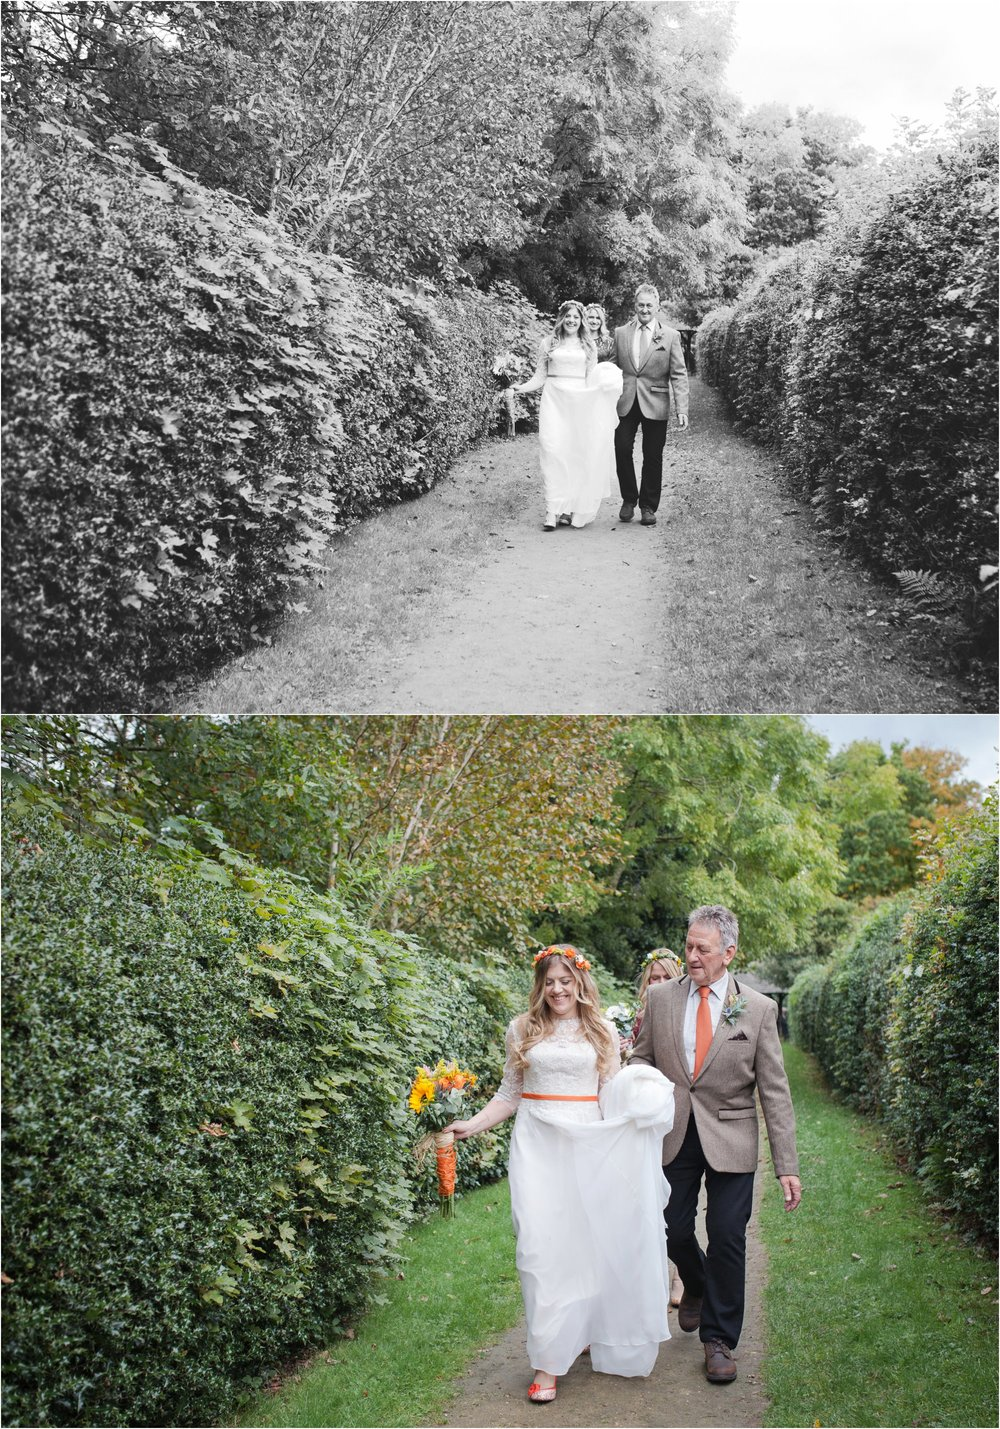 Styal_Wedding_Wilmslow_Cheshire_Autumn_Colourful_photography_0077.jpg